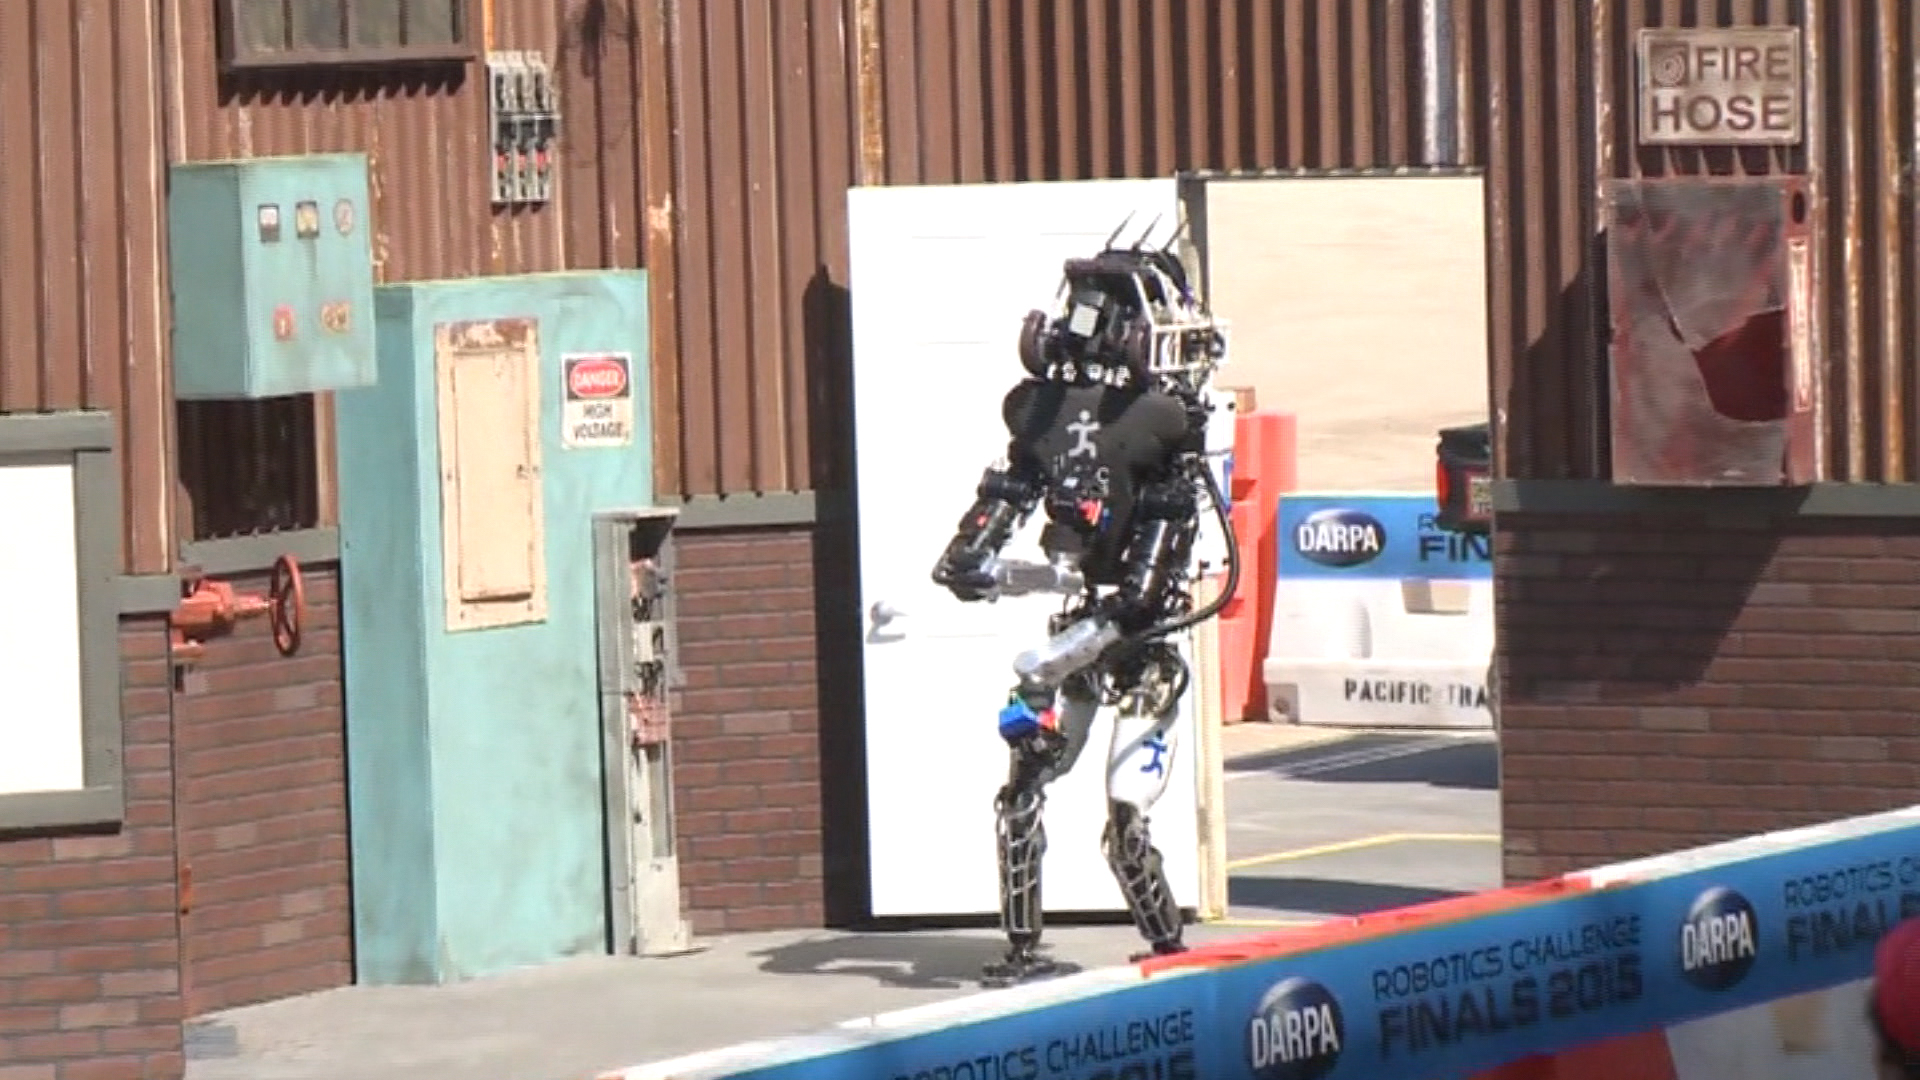 Musk, Wozniak Join Top AI Researchers in Call for Ban on Killer Robots